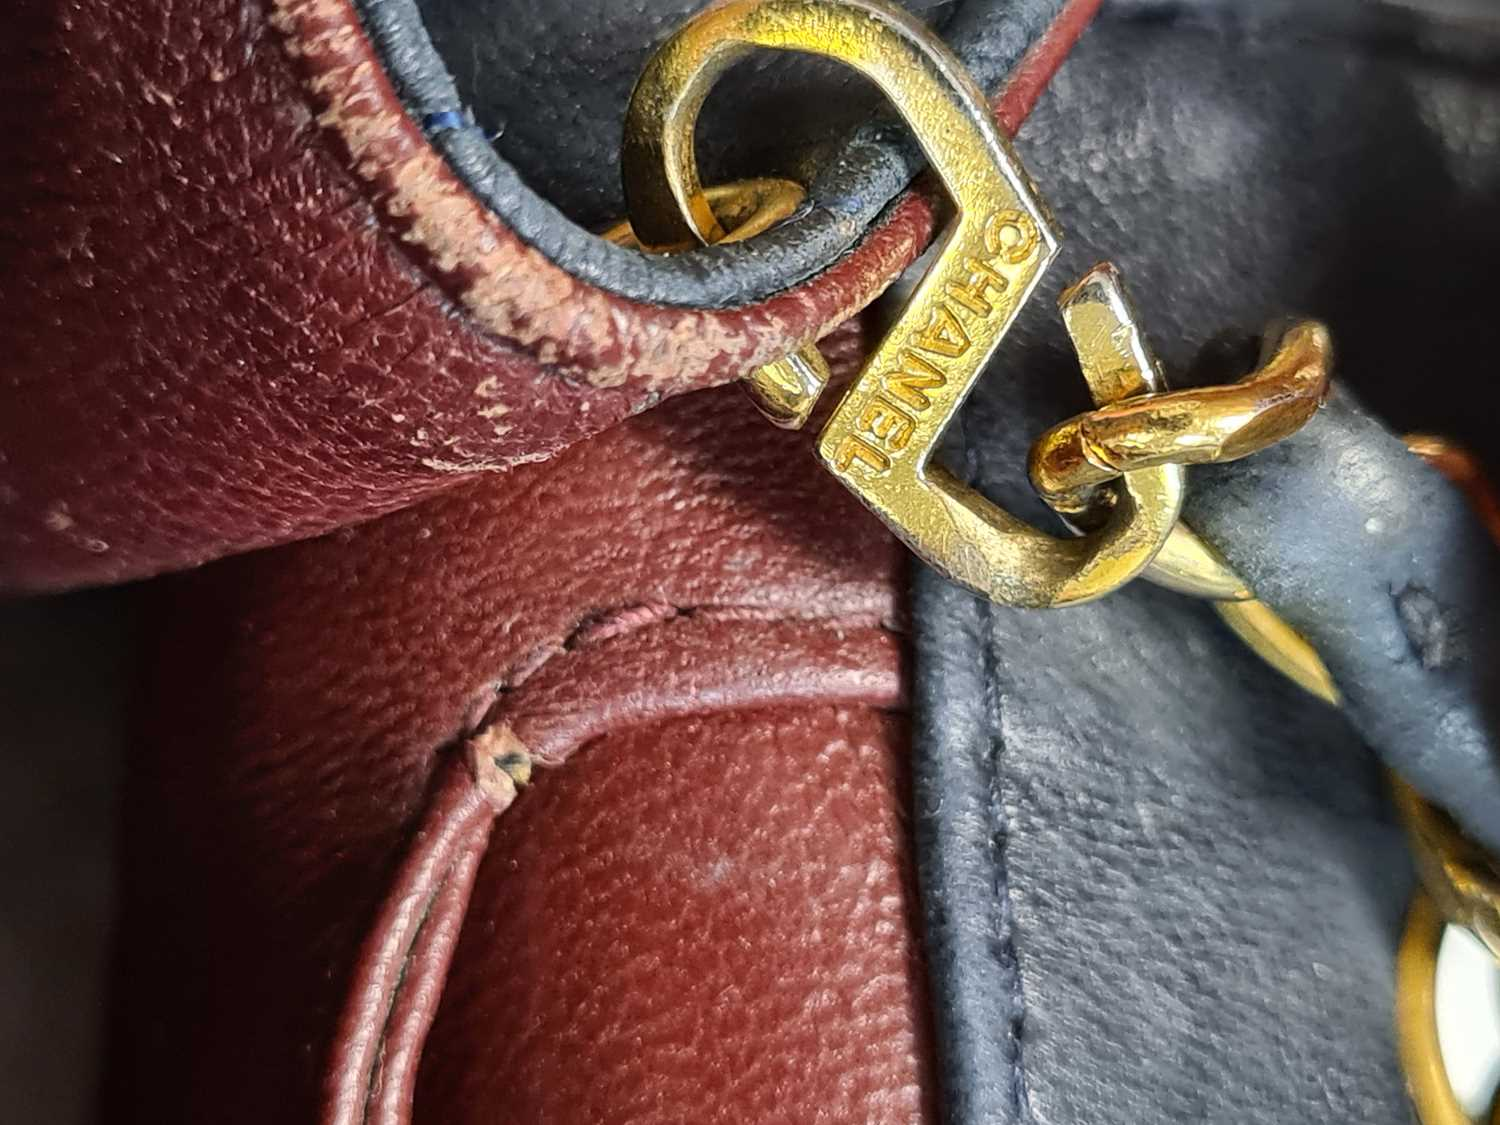 Chanel. A classic quilted leather handbag, of tapered square design, with gold tone CC logo clasp, - Image 24 of 26